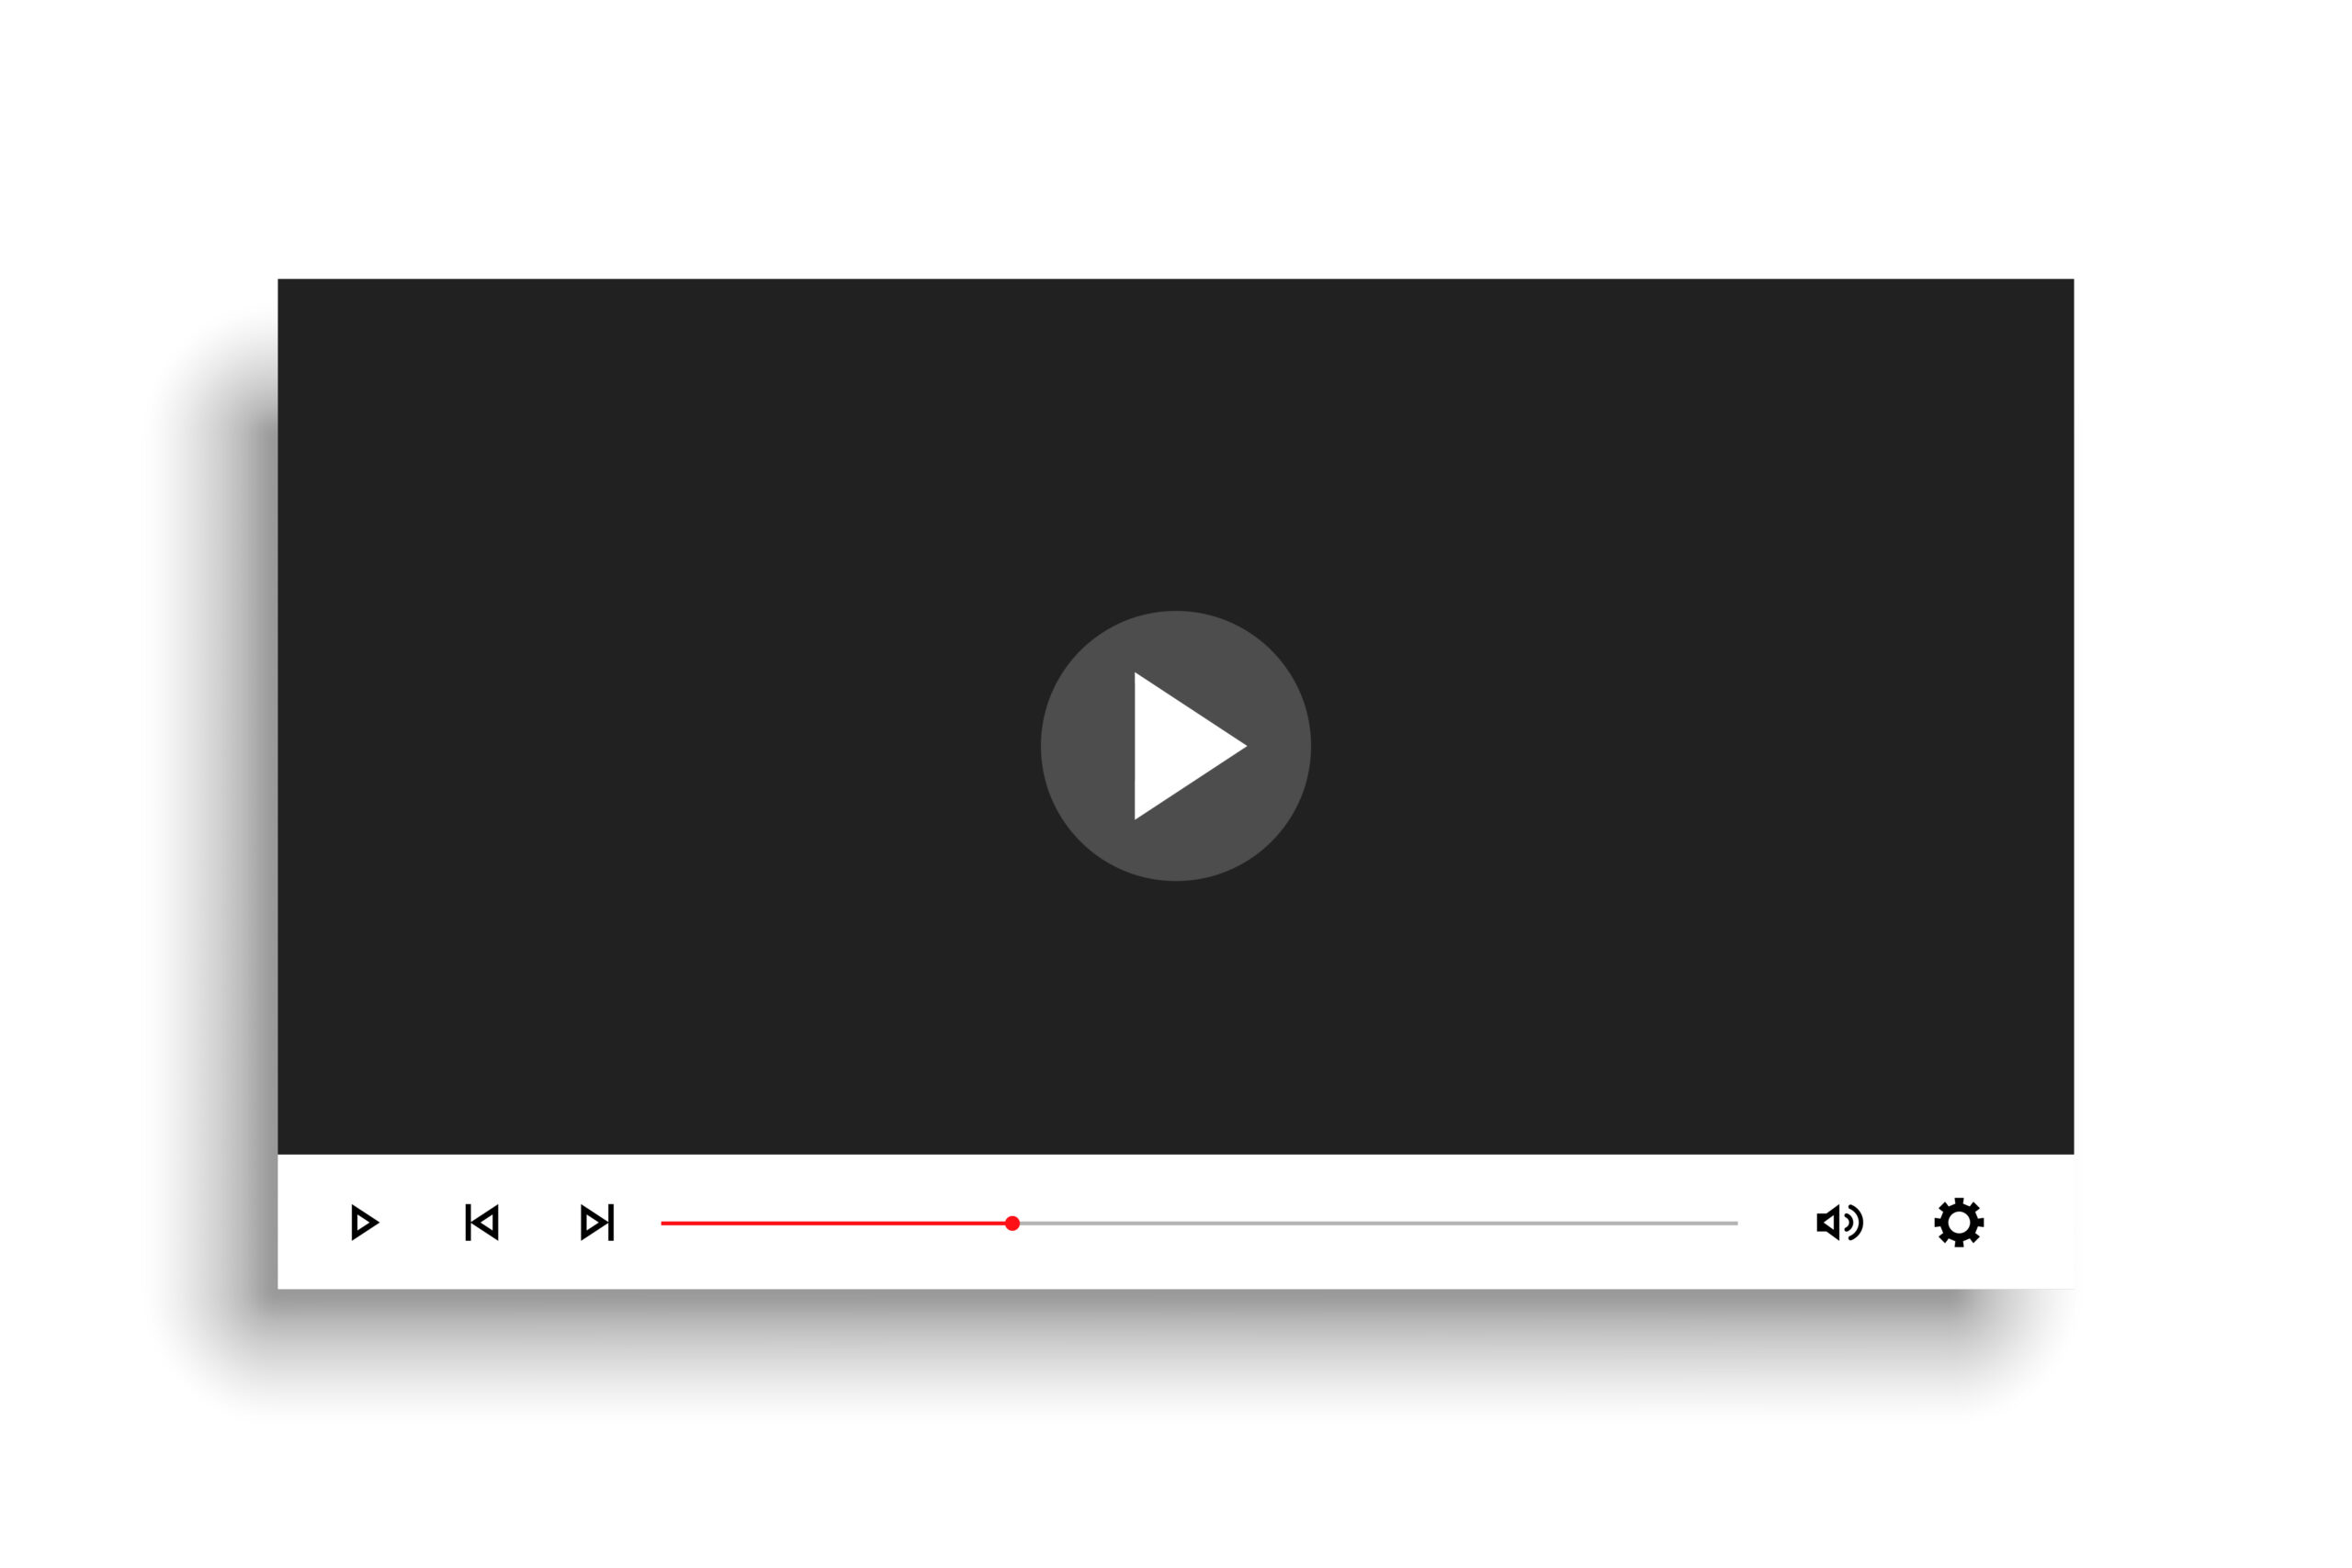 minimal white style video player mockup template design